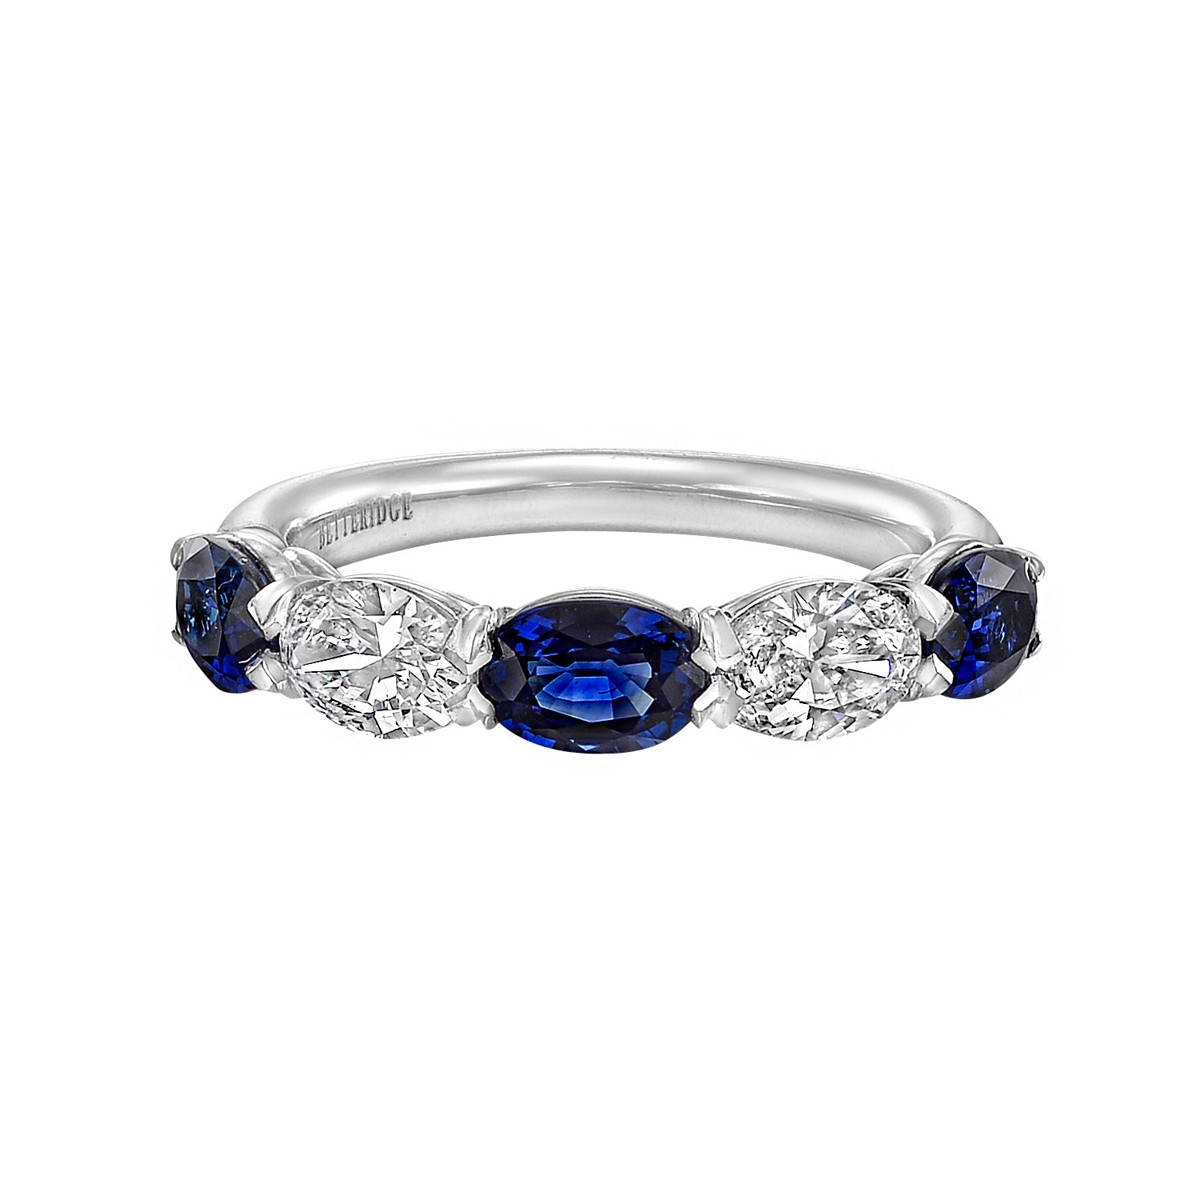 Five-Stone Oval Sapphire & Diamond Band Ring